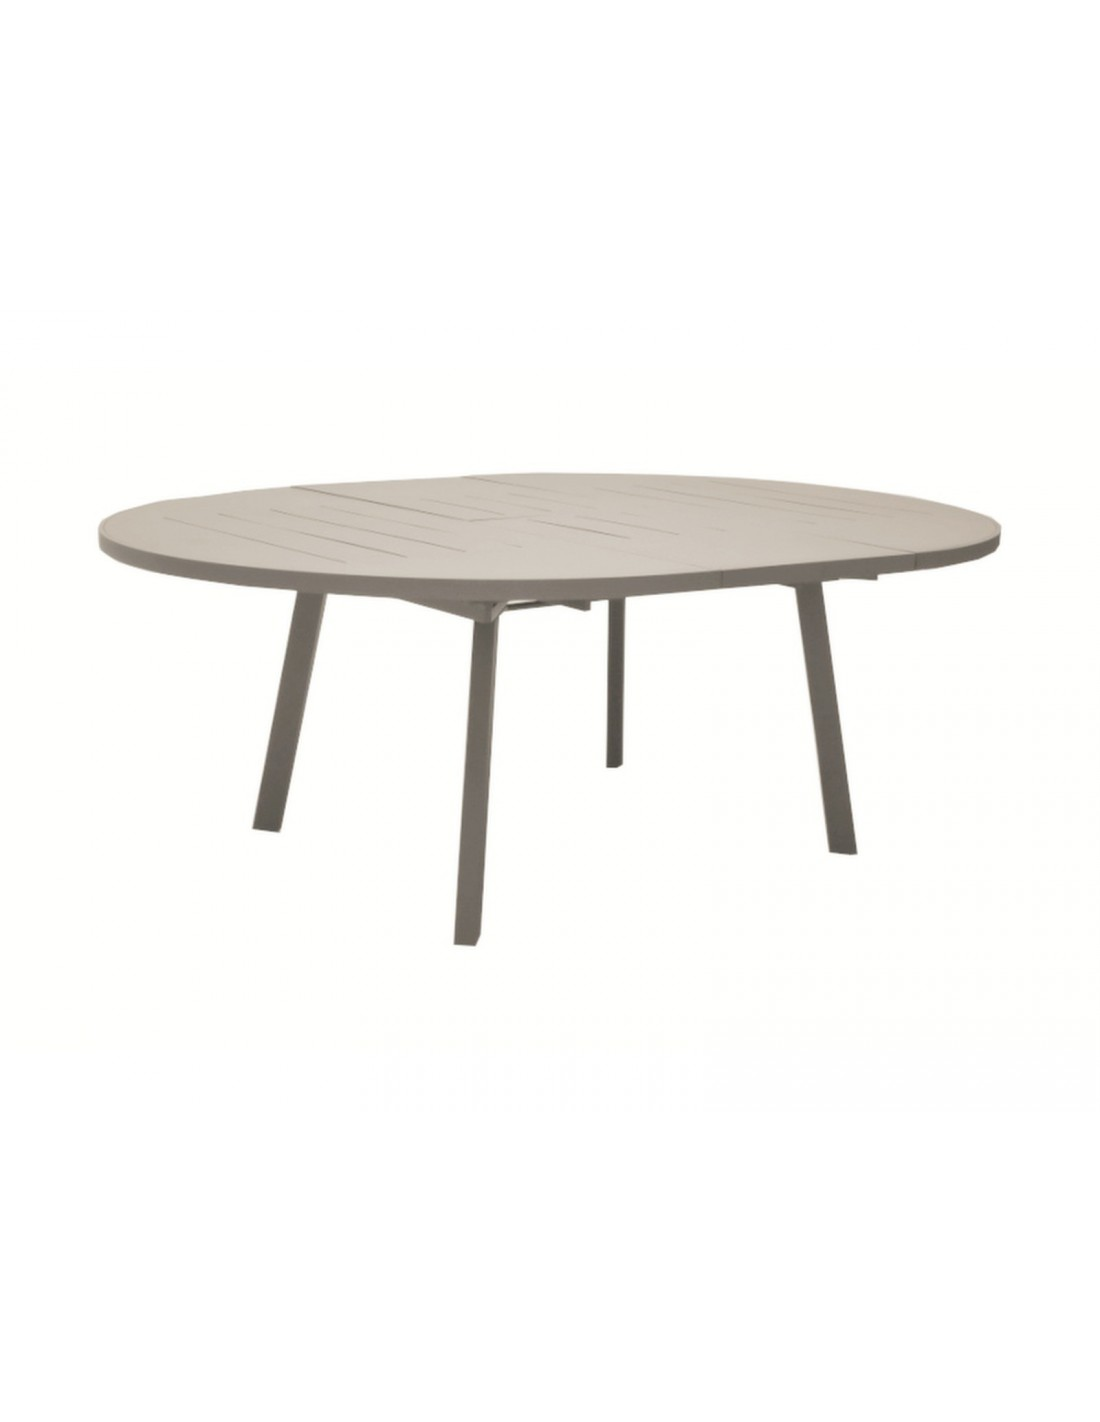 table de jardin azur ronde taupe 150 200 cm avec allonge oc o. Black Bedroom Furniture Sets. Home Design Ideas